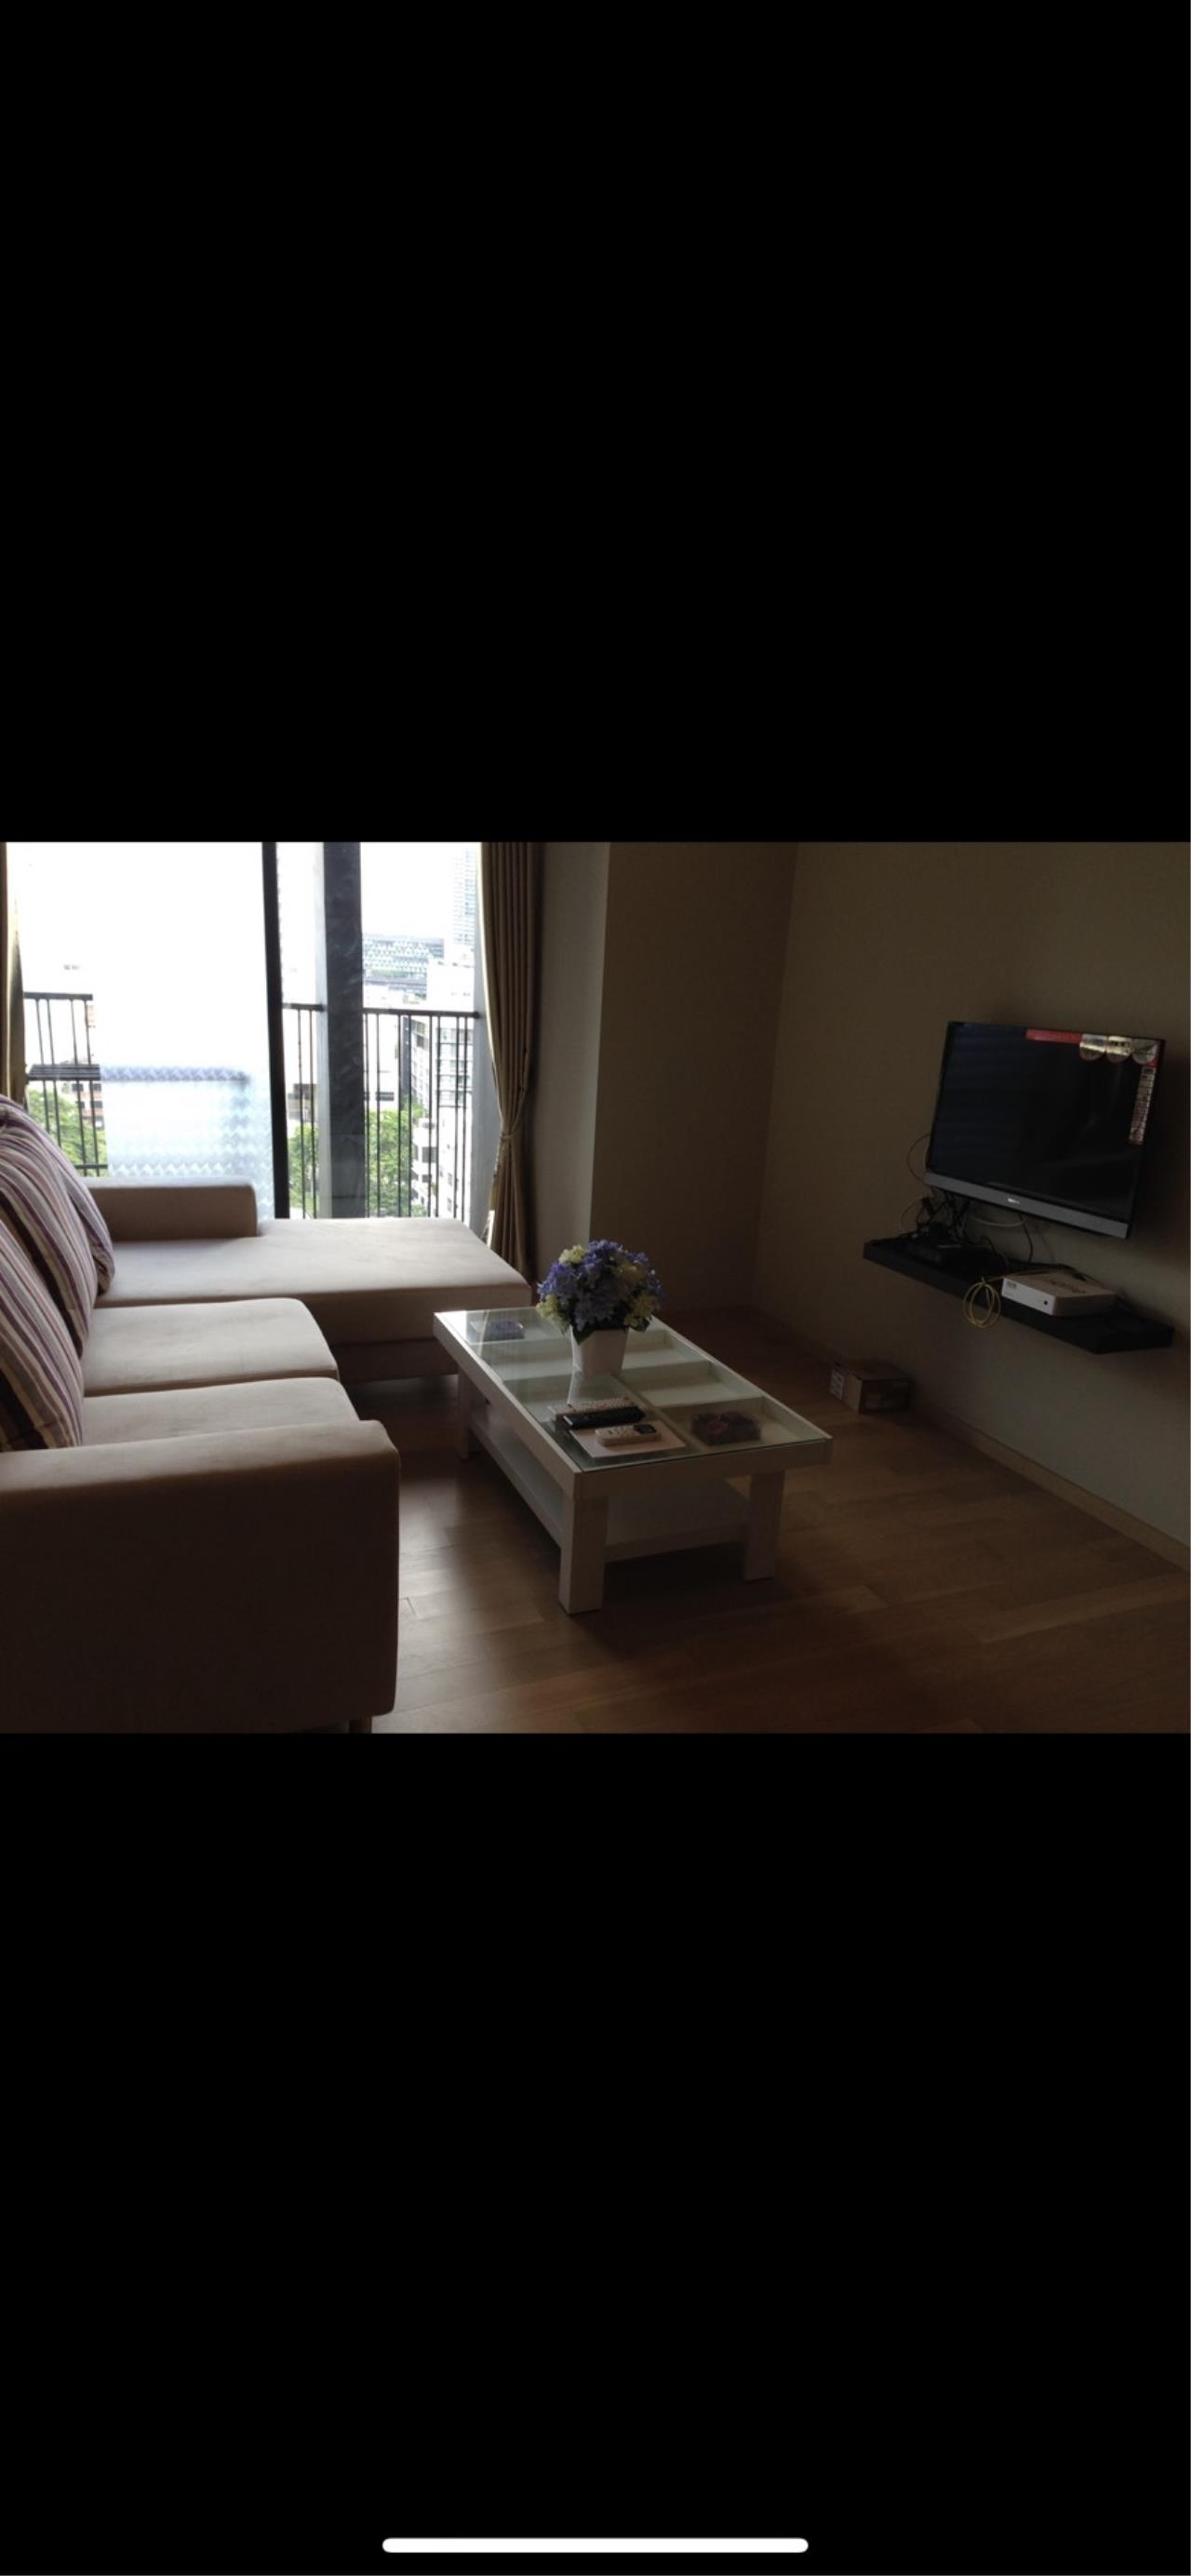 Blueocean property Agency's Condo for Rent at Noble Reveal 1